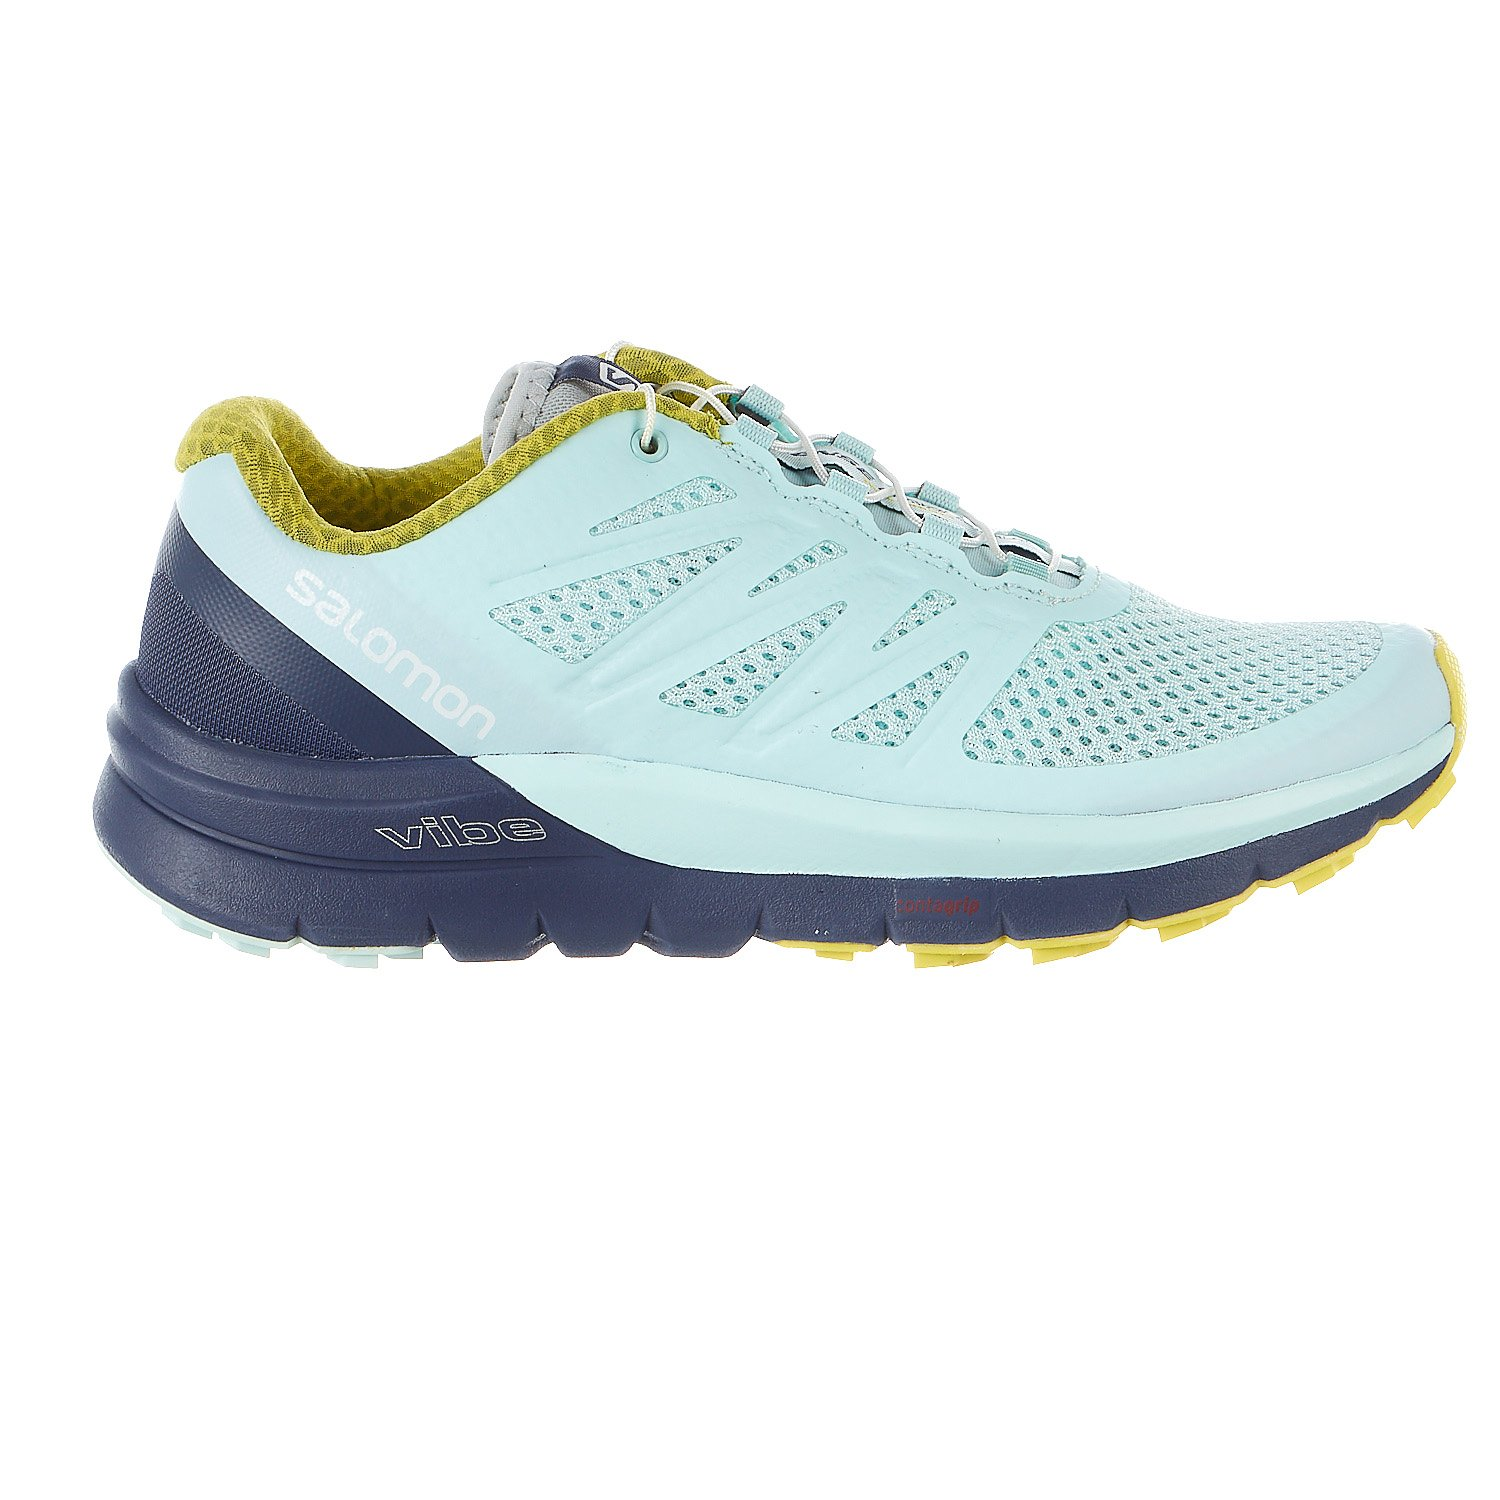 Salomon Women's Sense Pro Max Shoes Fair Aqua / Crown Blue / Sulphur Spring 7